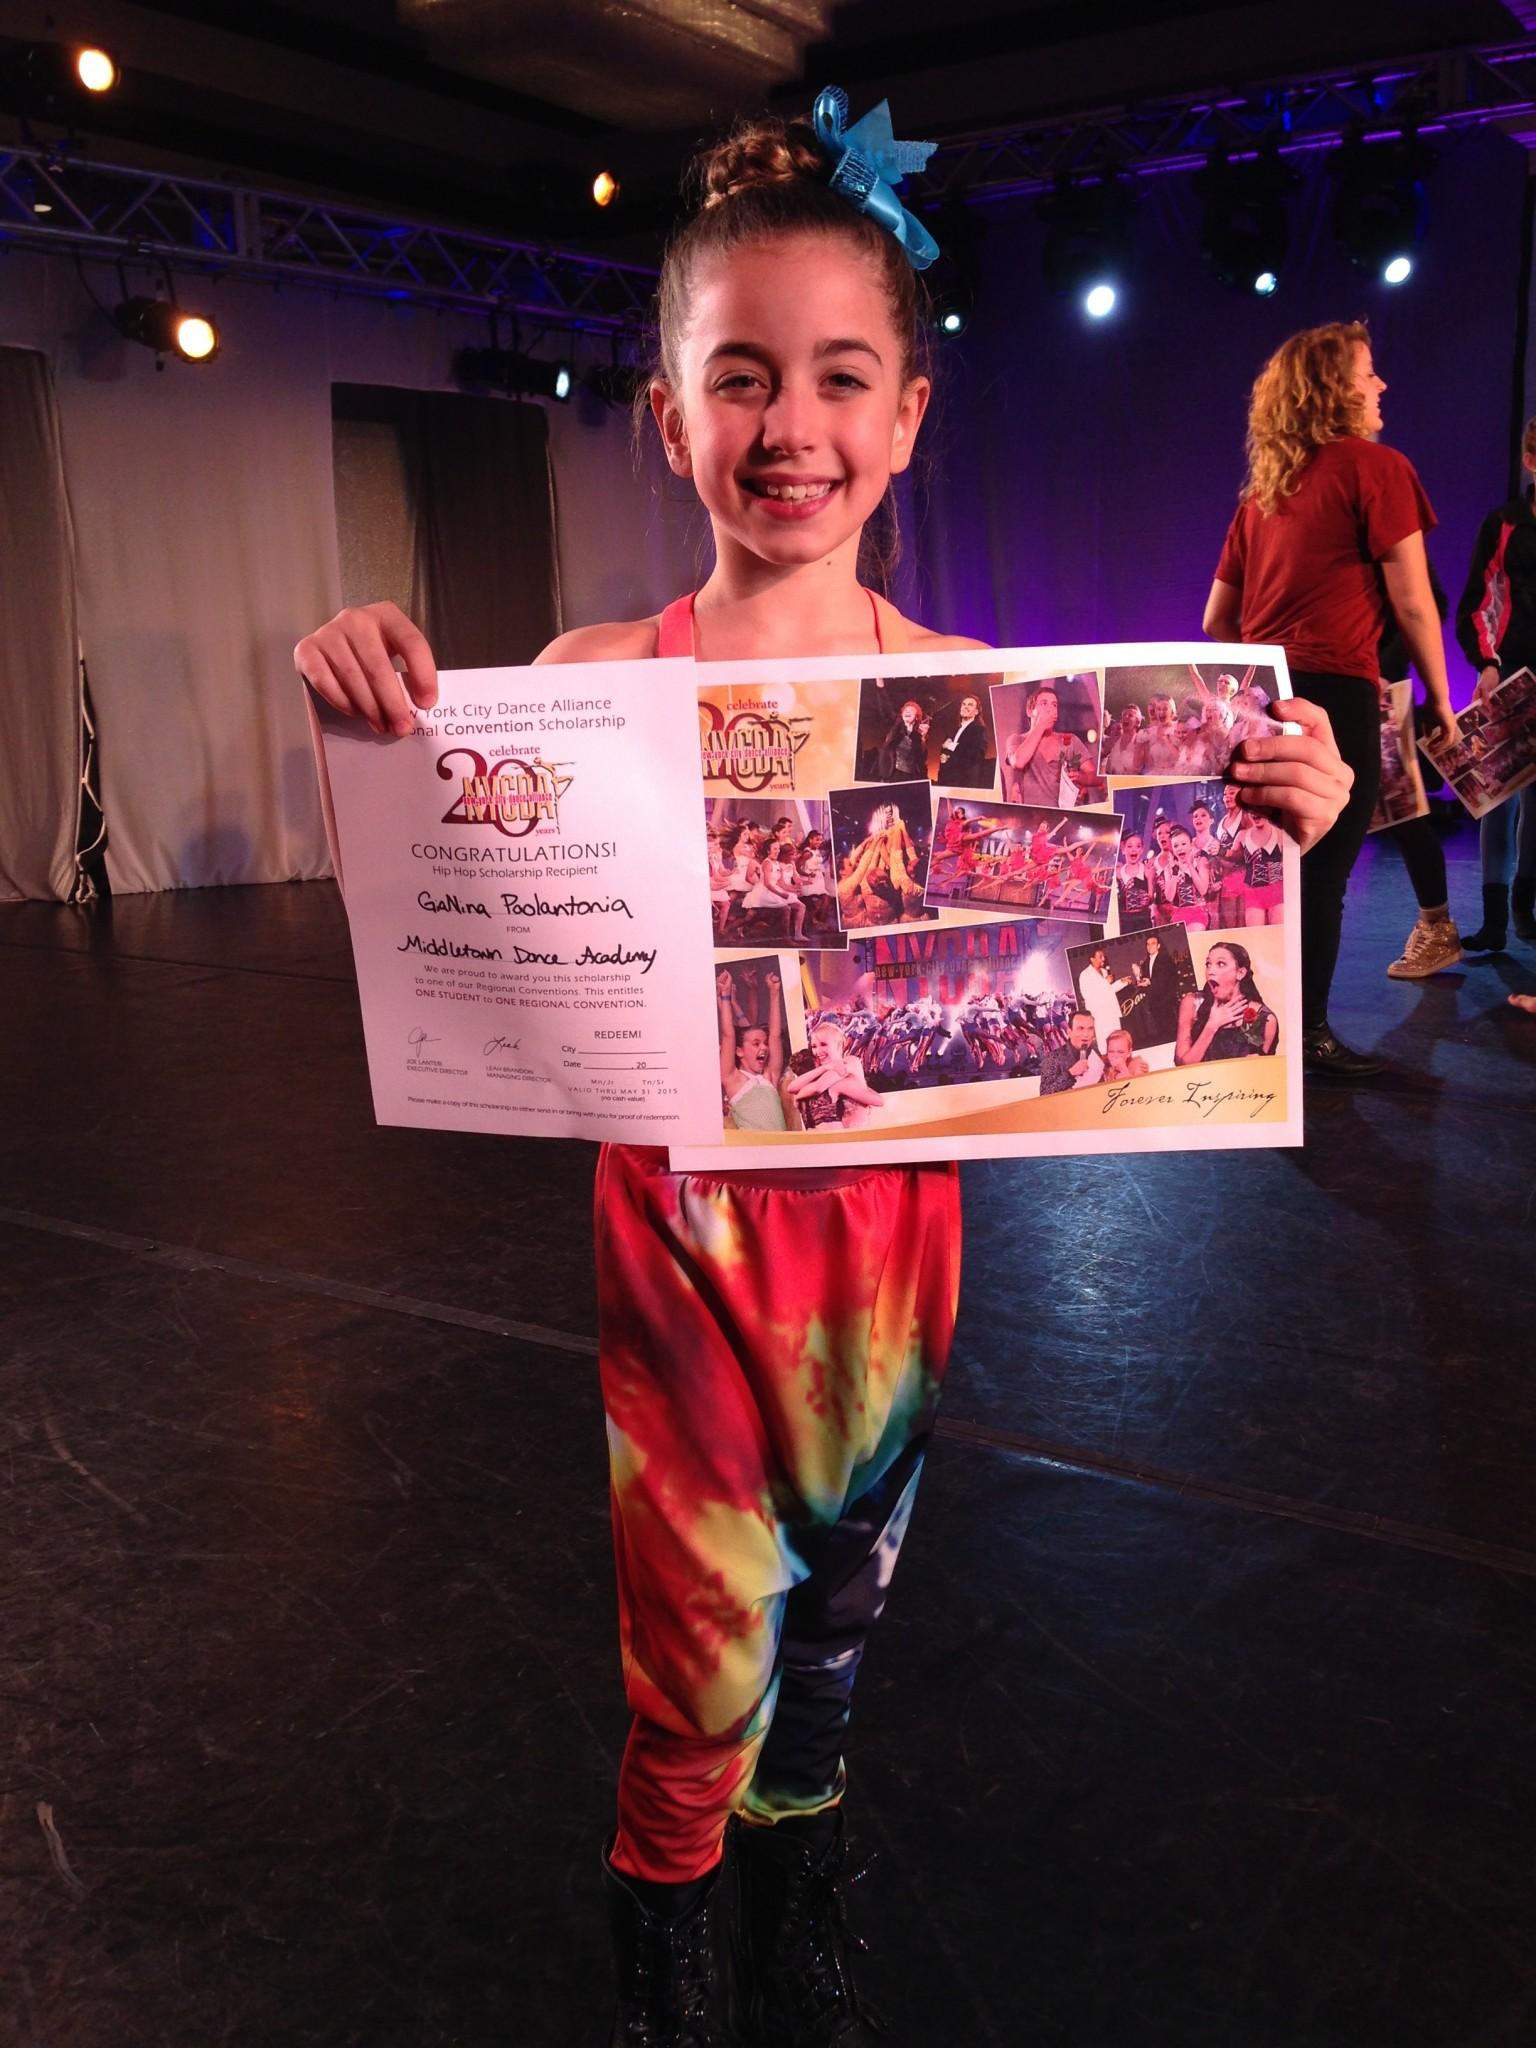 GiaNina-with-Junior-room-scholarship-NYCDA-regional-2014-1536x2048.jpg